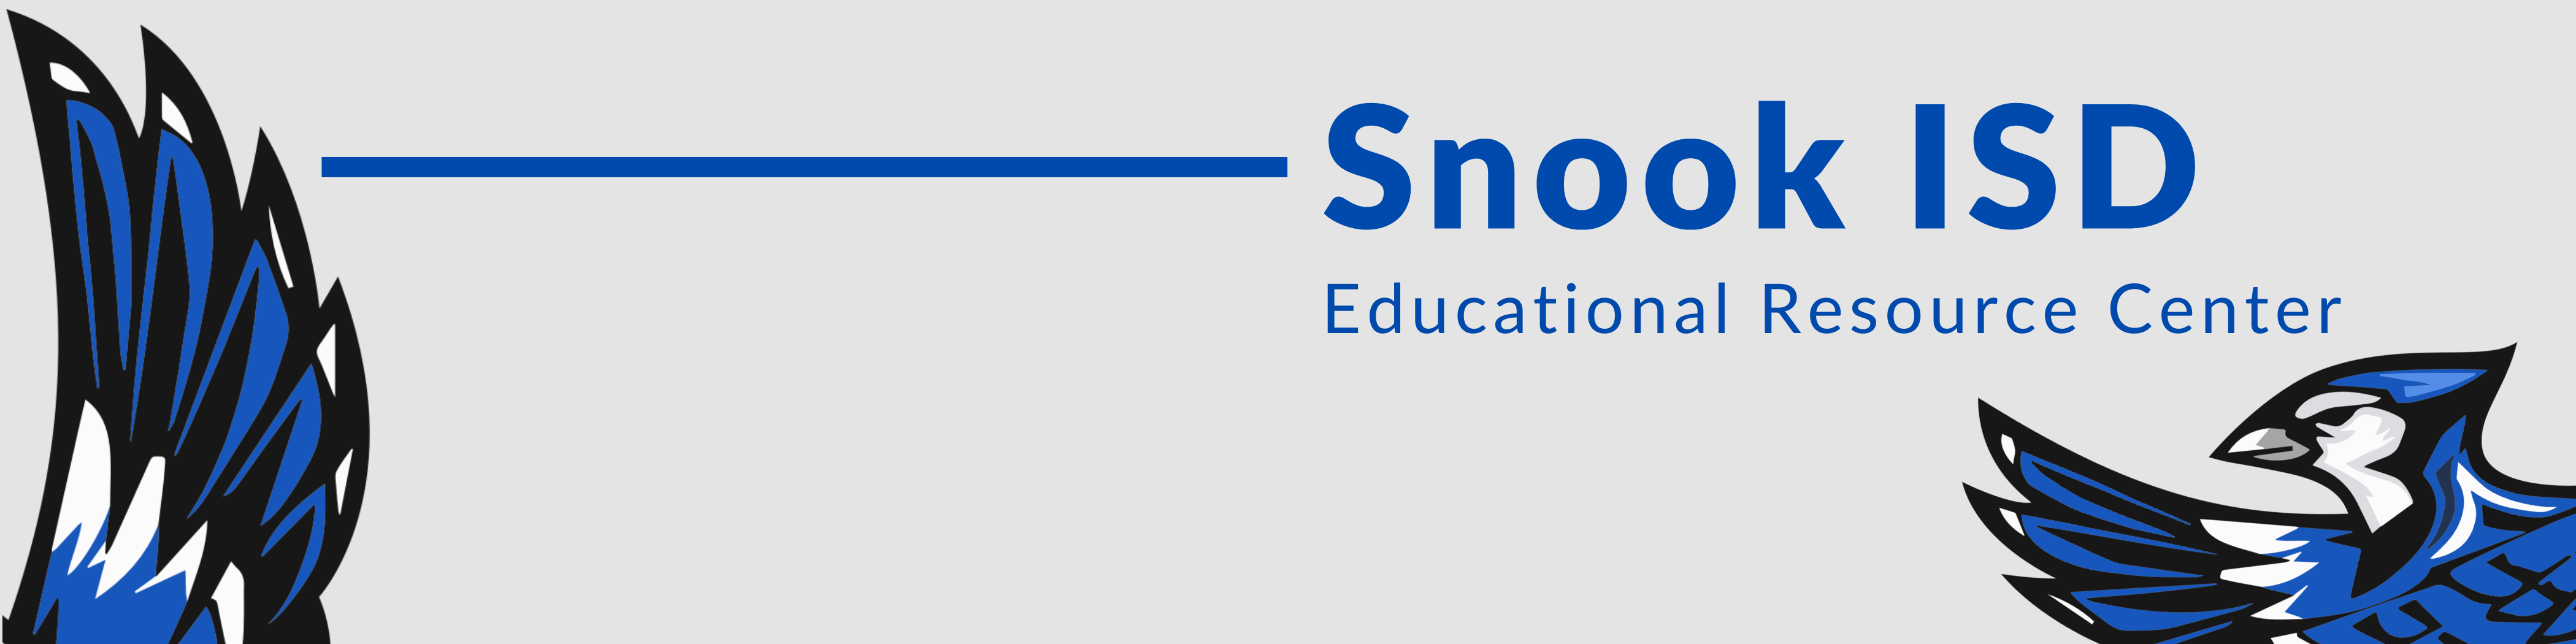 Snook ISD Educational Resource Center